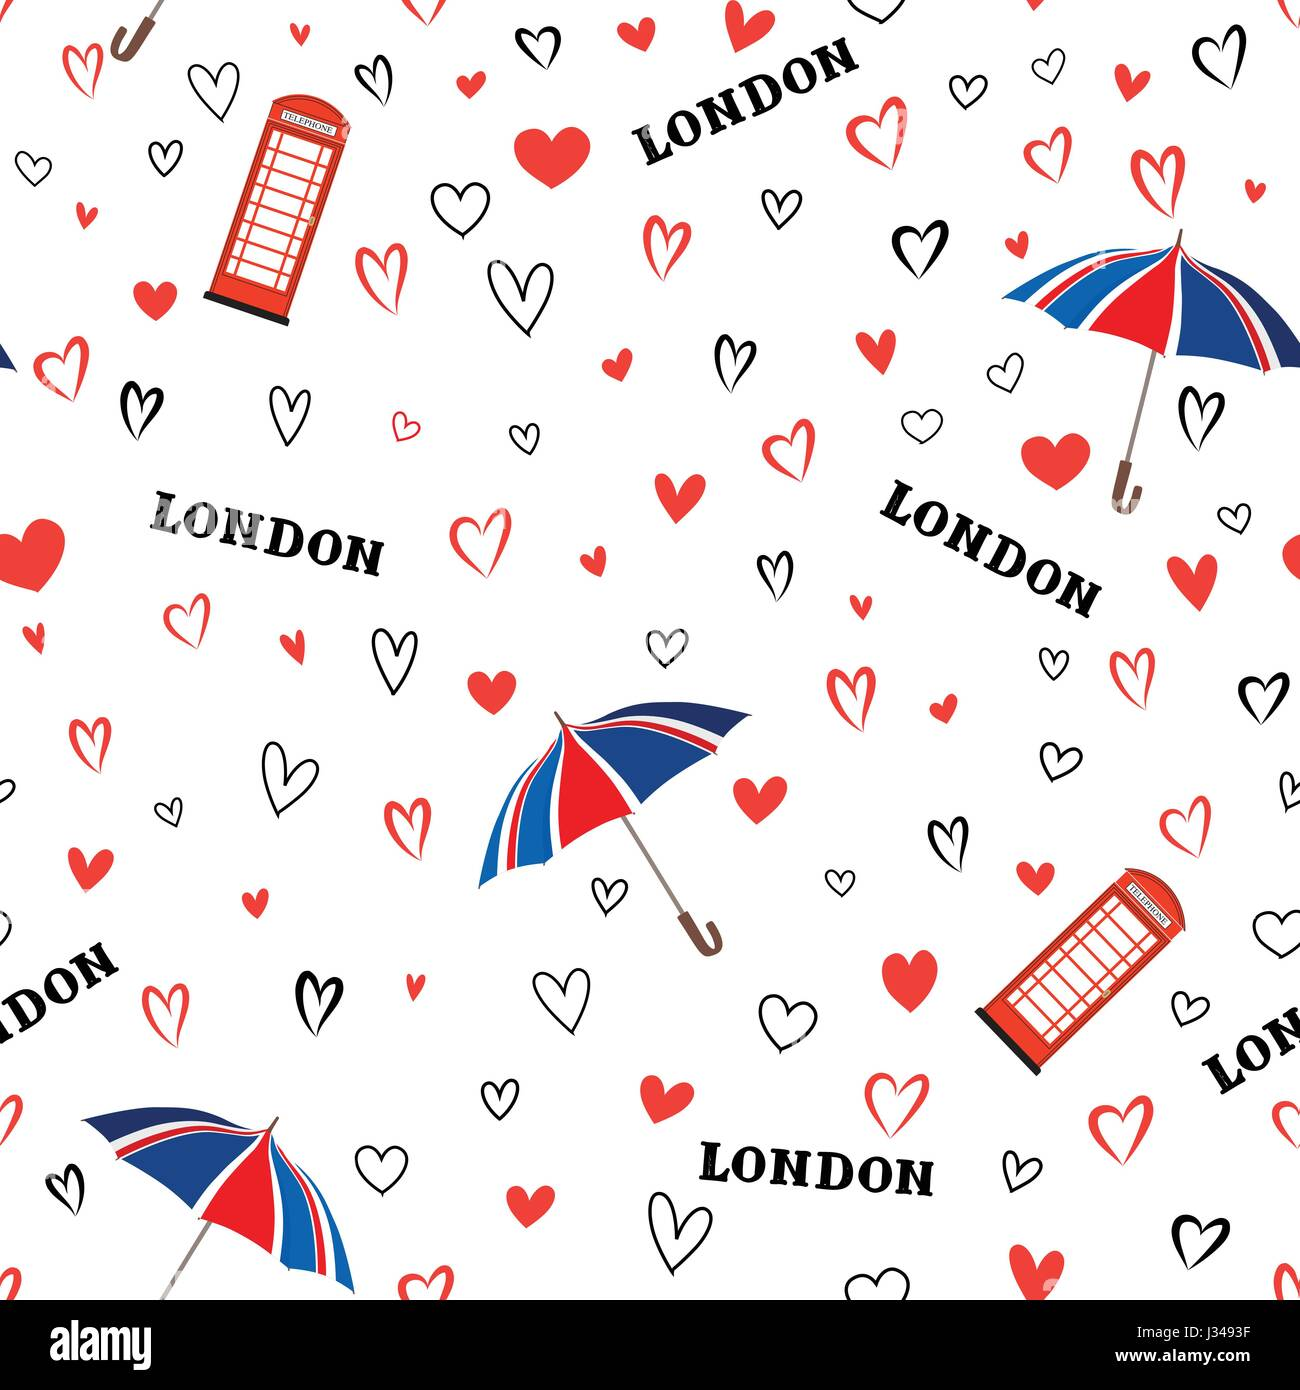 Travel London City Seamless Pattern With Love Hearts And Umbrella